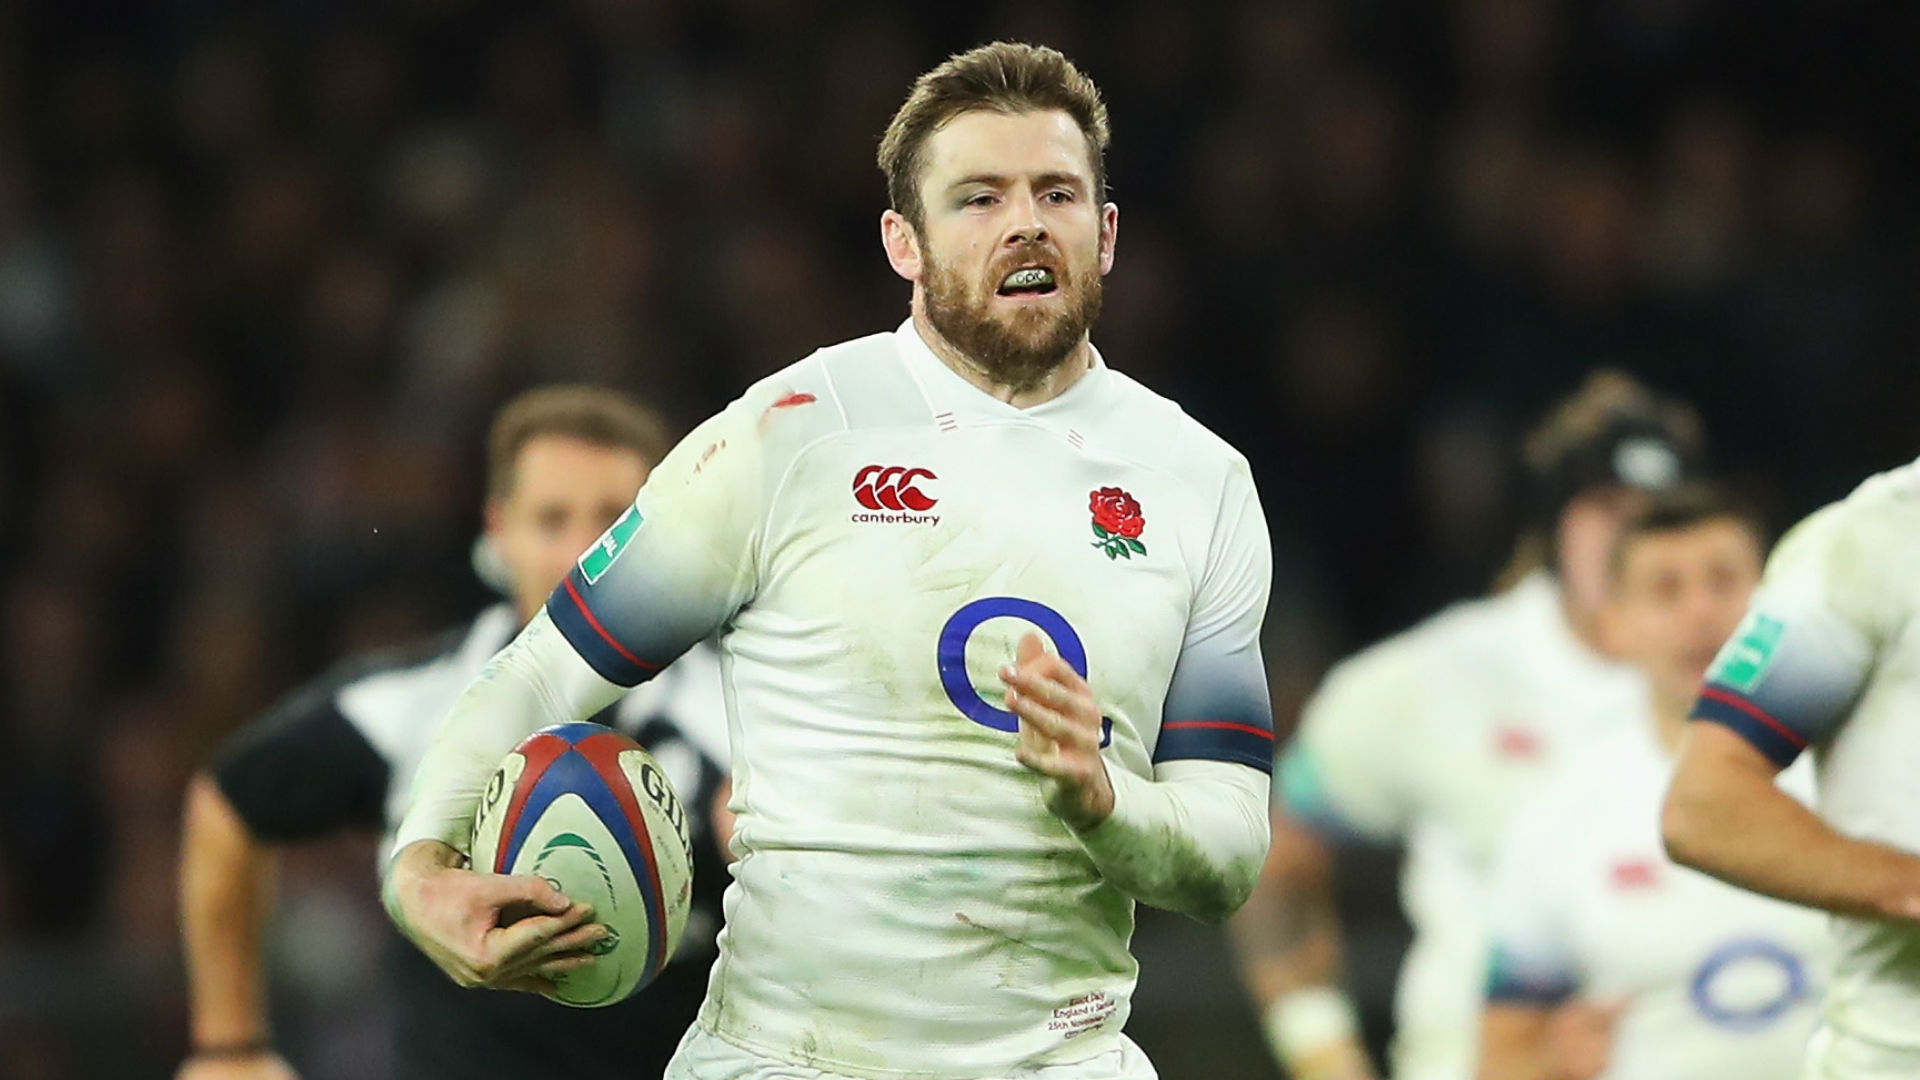 England wing Elliot Daly has his sights set on facing France after missing the first three Six Nations rounds.